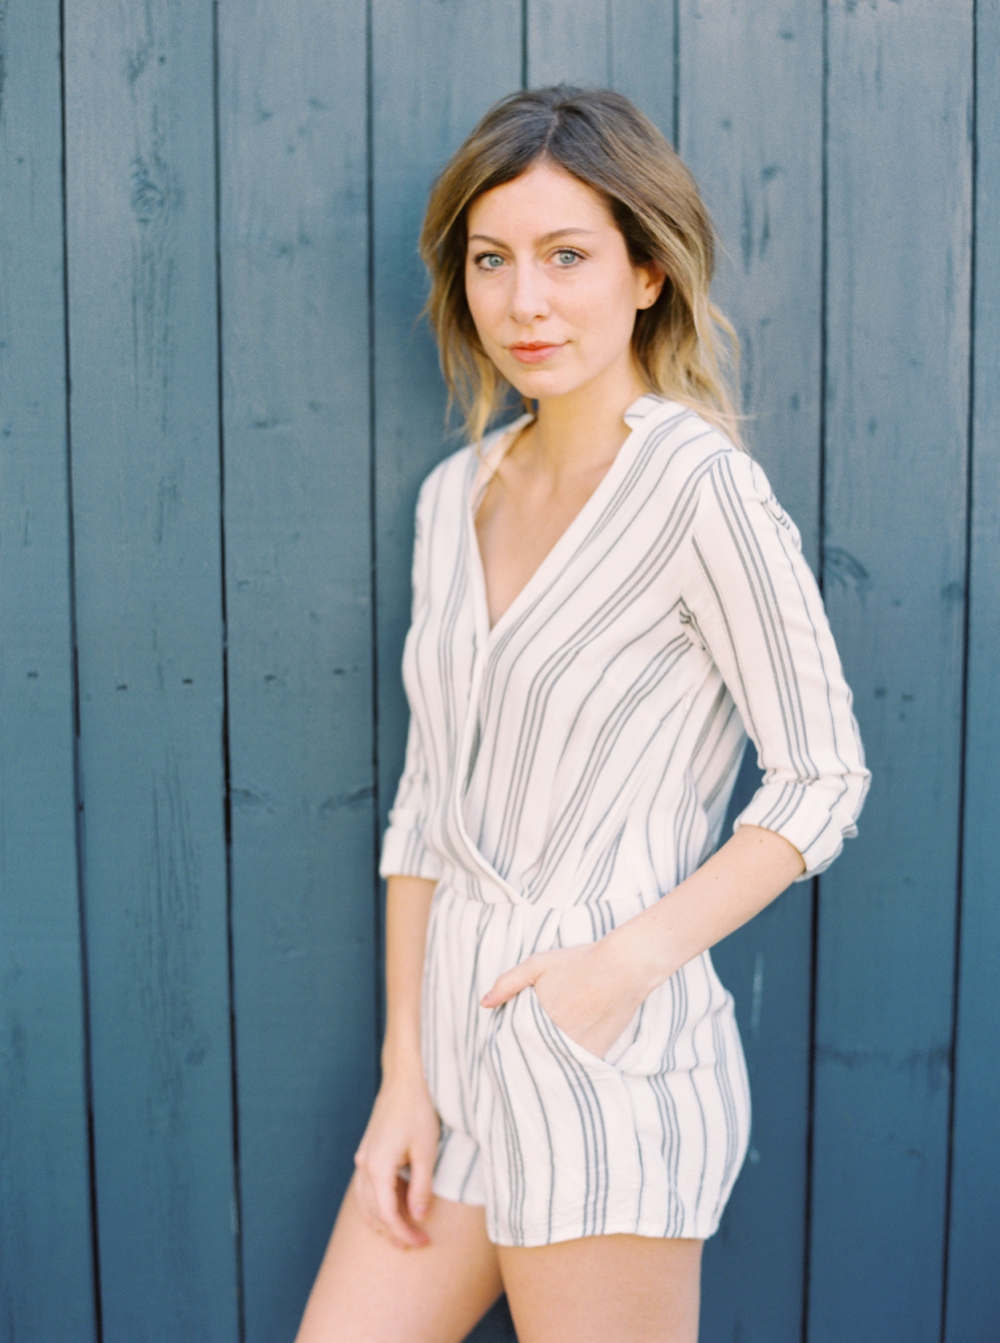 Brittany Messner Life Set Sail   Calgary Fashion Photographers & Local Influencers